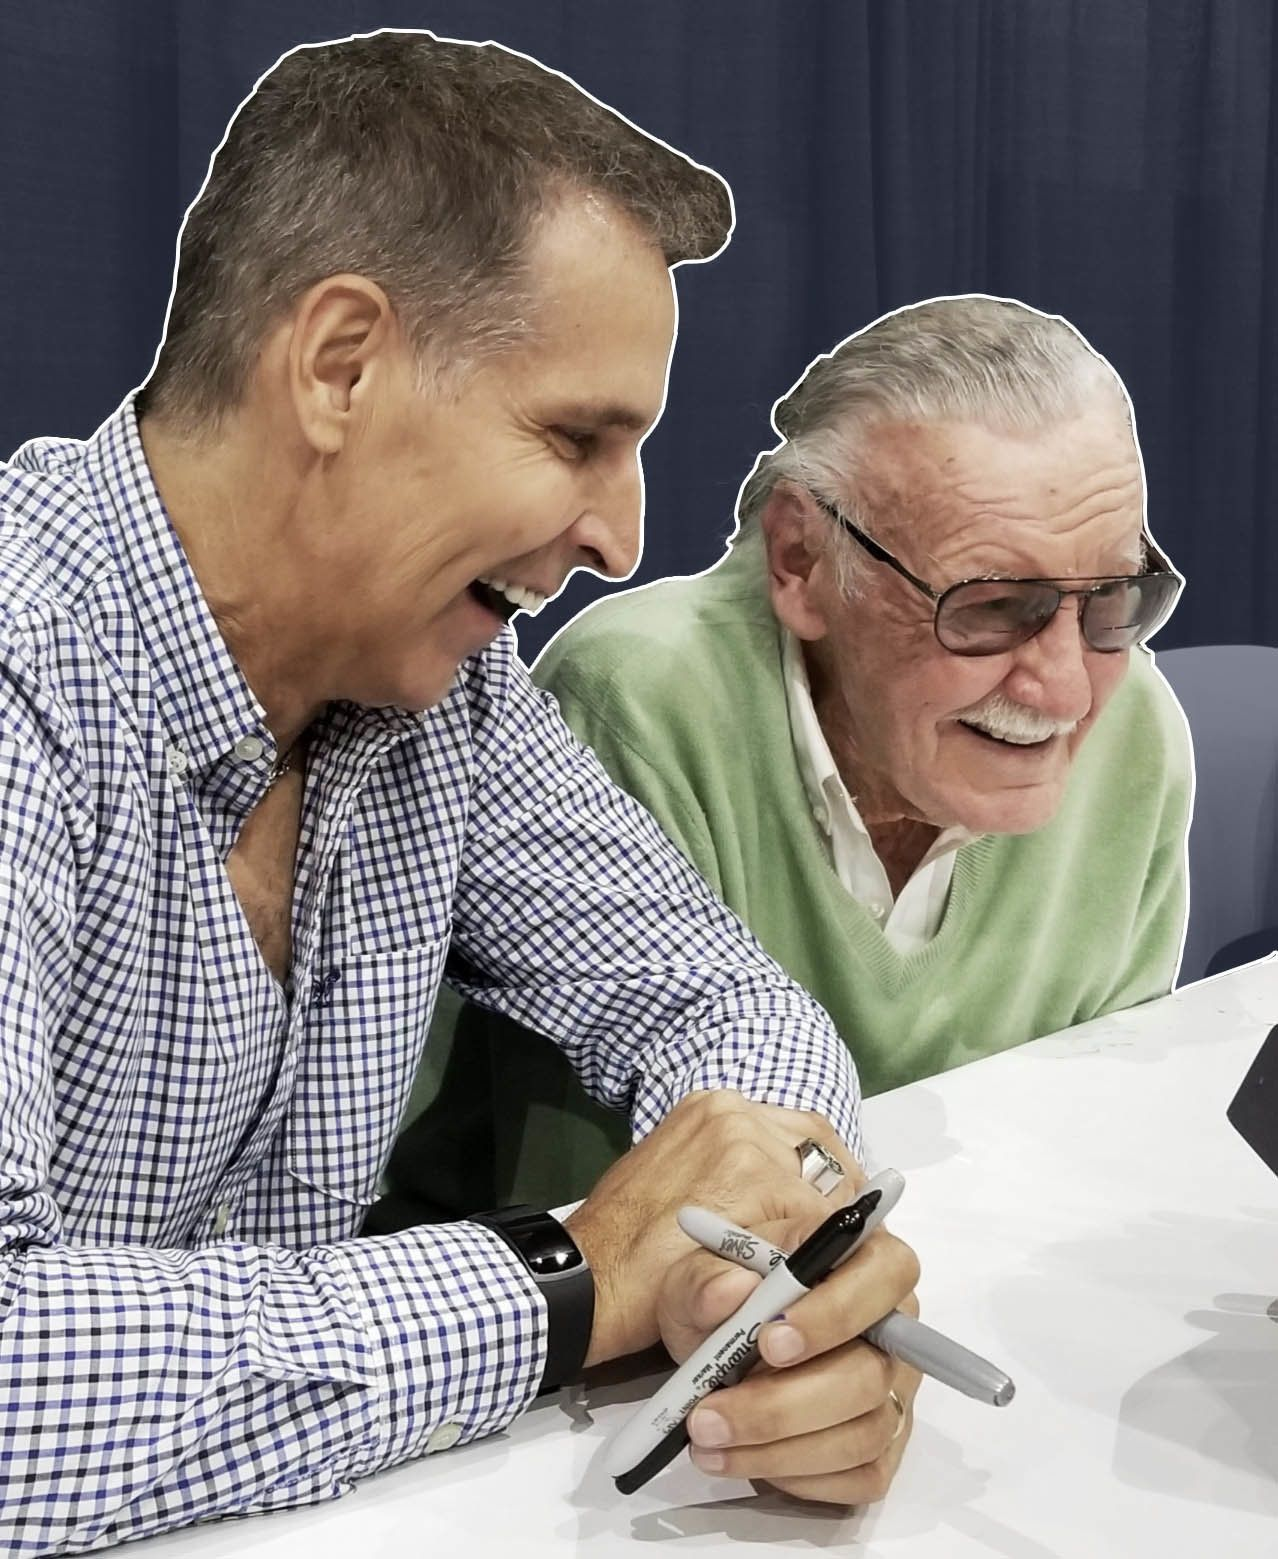 Todd McFarlane and Stan Lee worked together at Marvel.